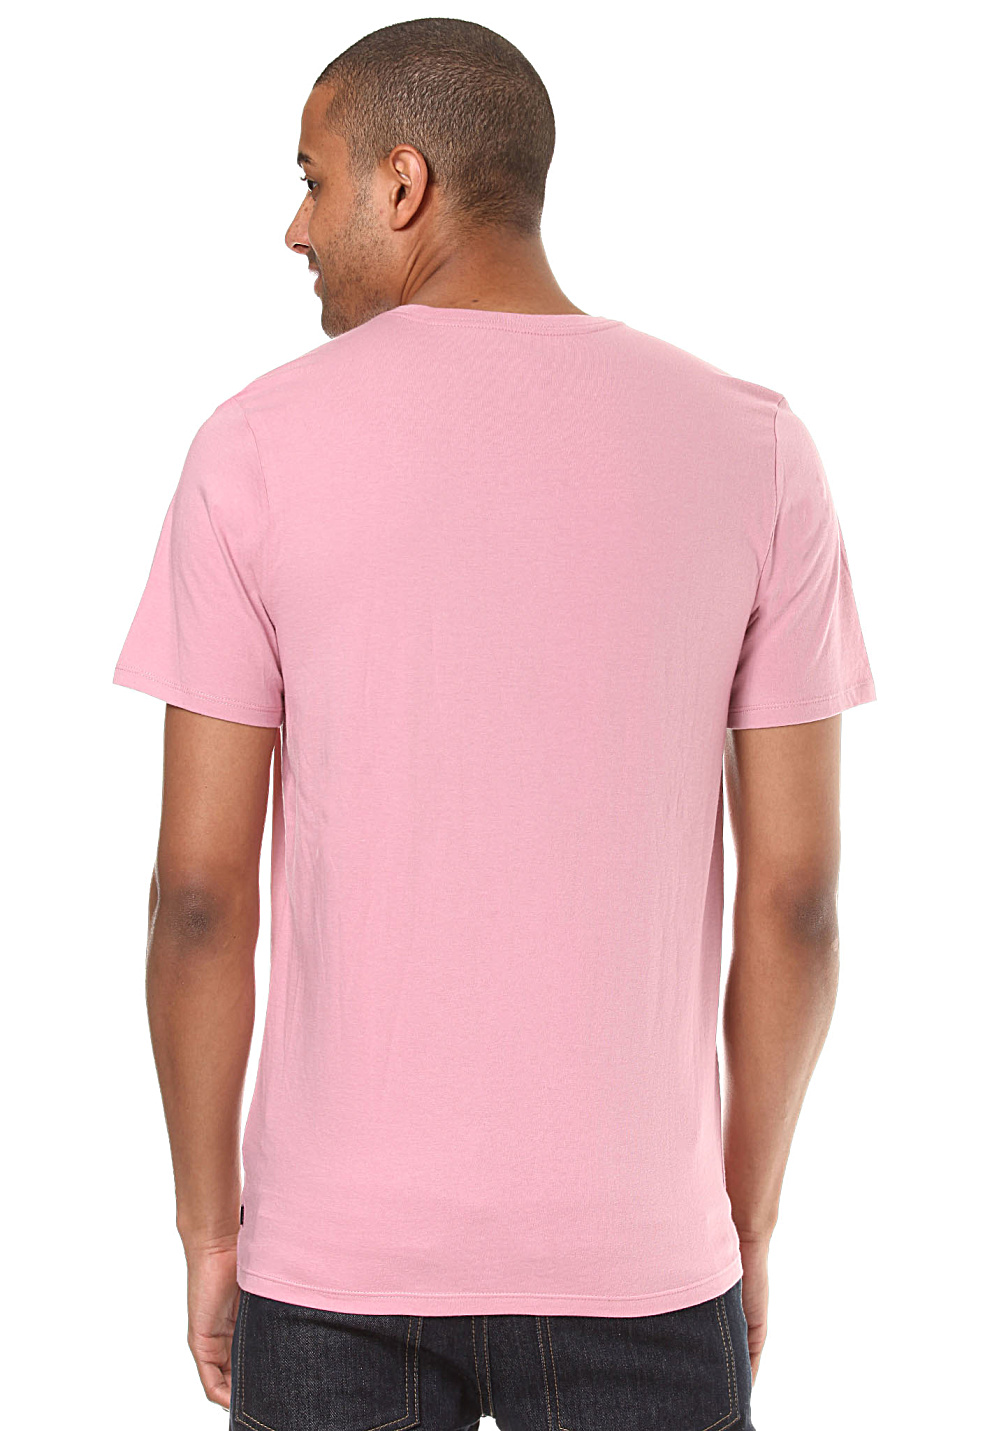 2434fc28 ... NIKE SB Essential - T-Shirt for Men - Pink. Back to Overview. 1; 2.  Previous